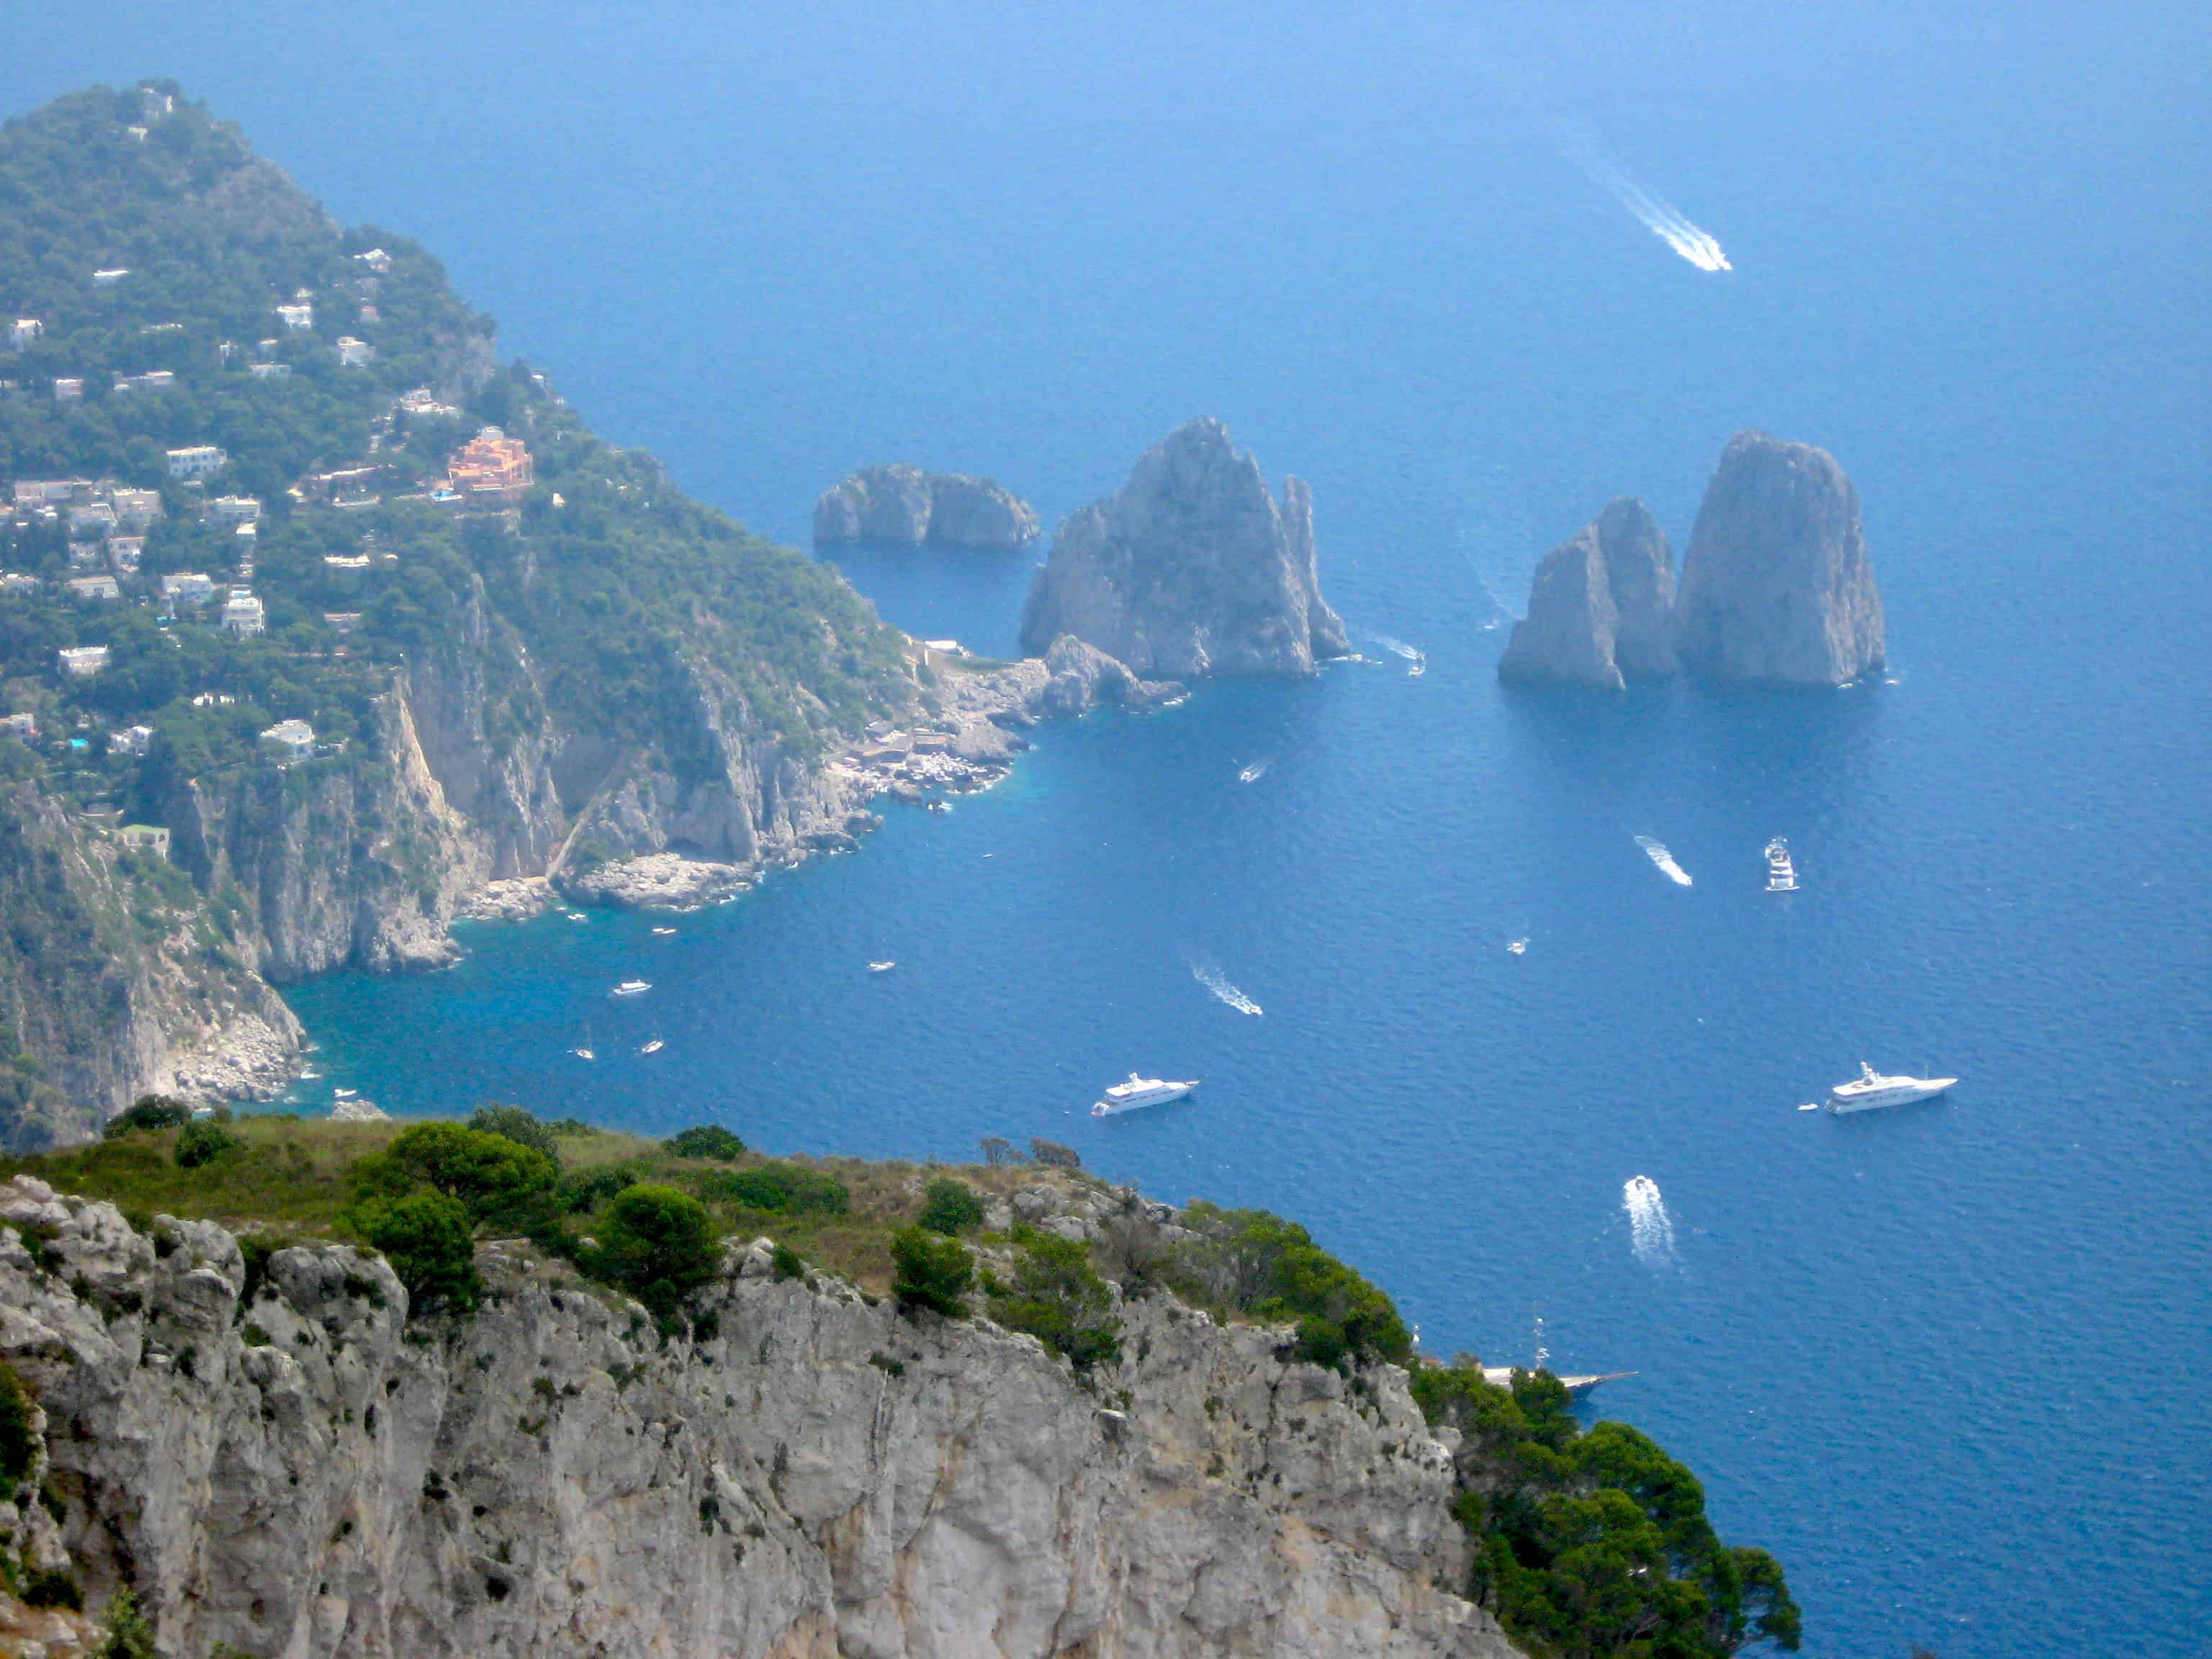 Mount Solaro Capri View